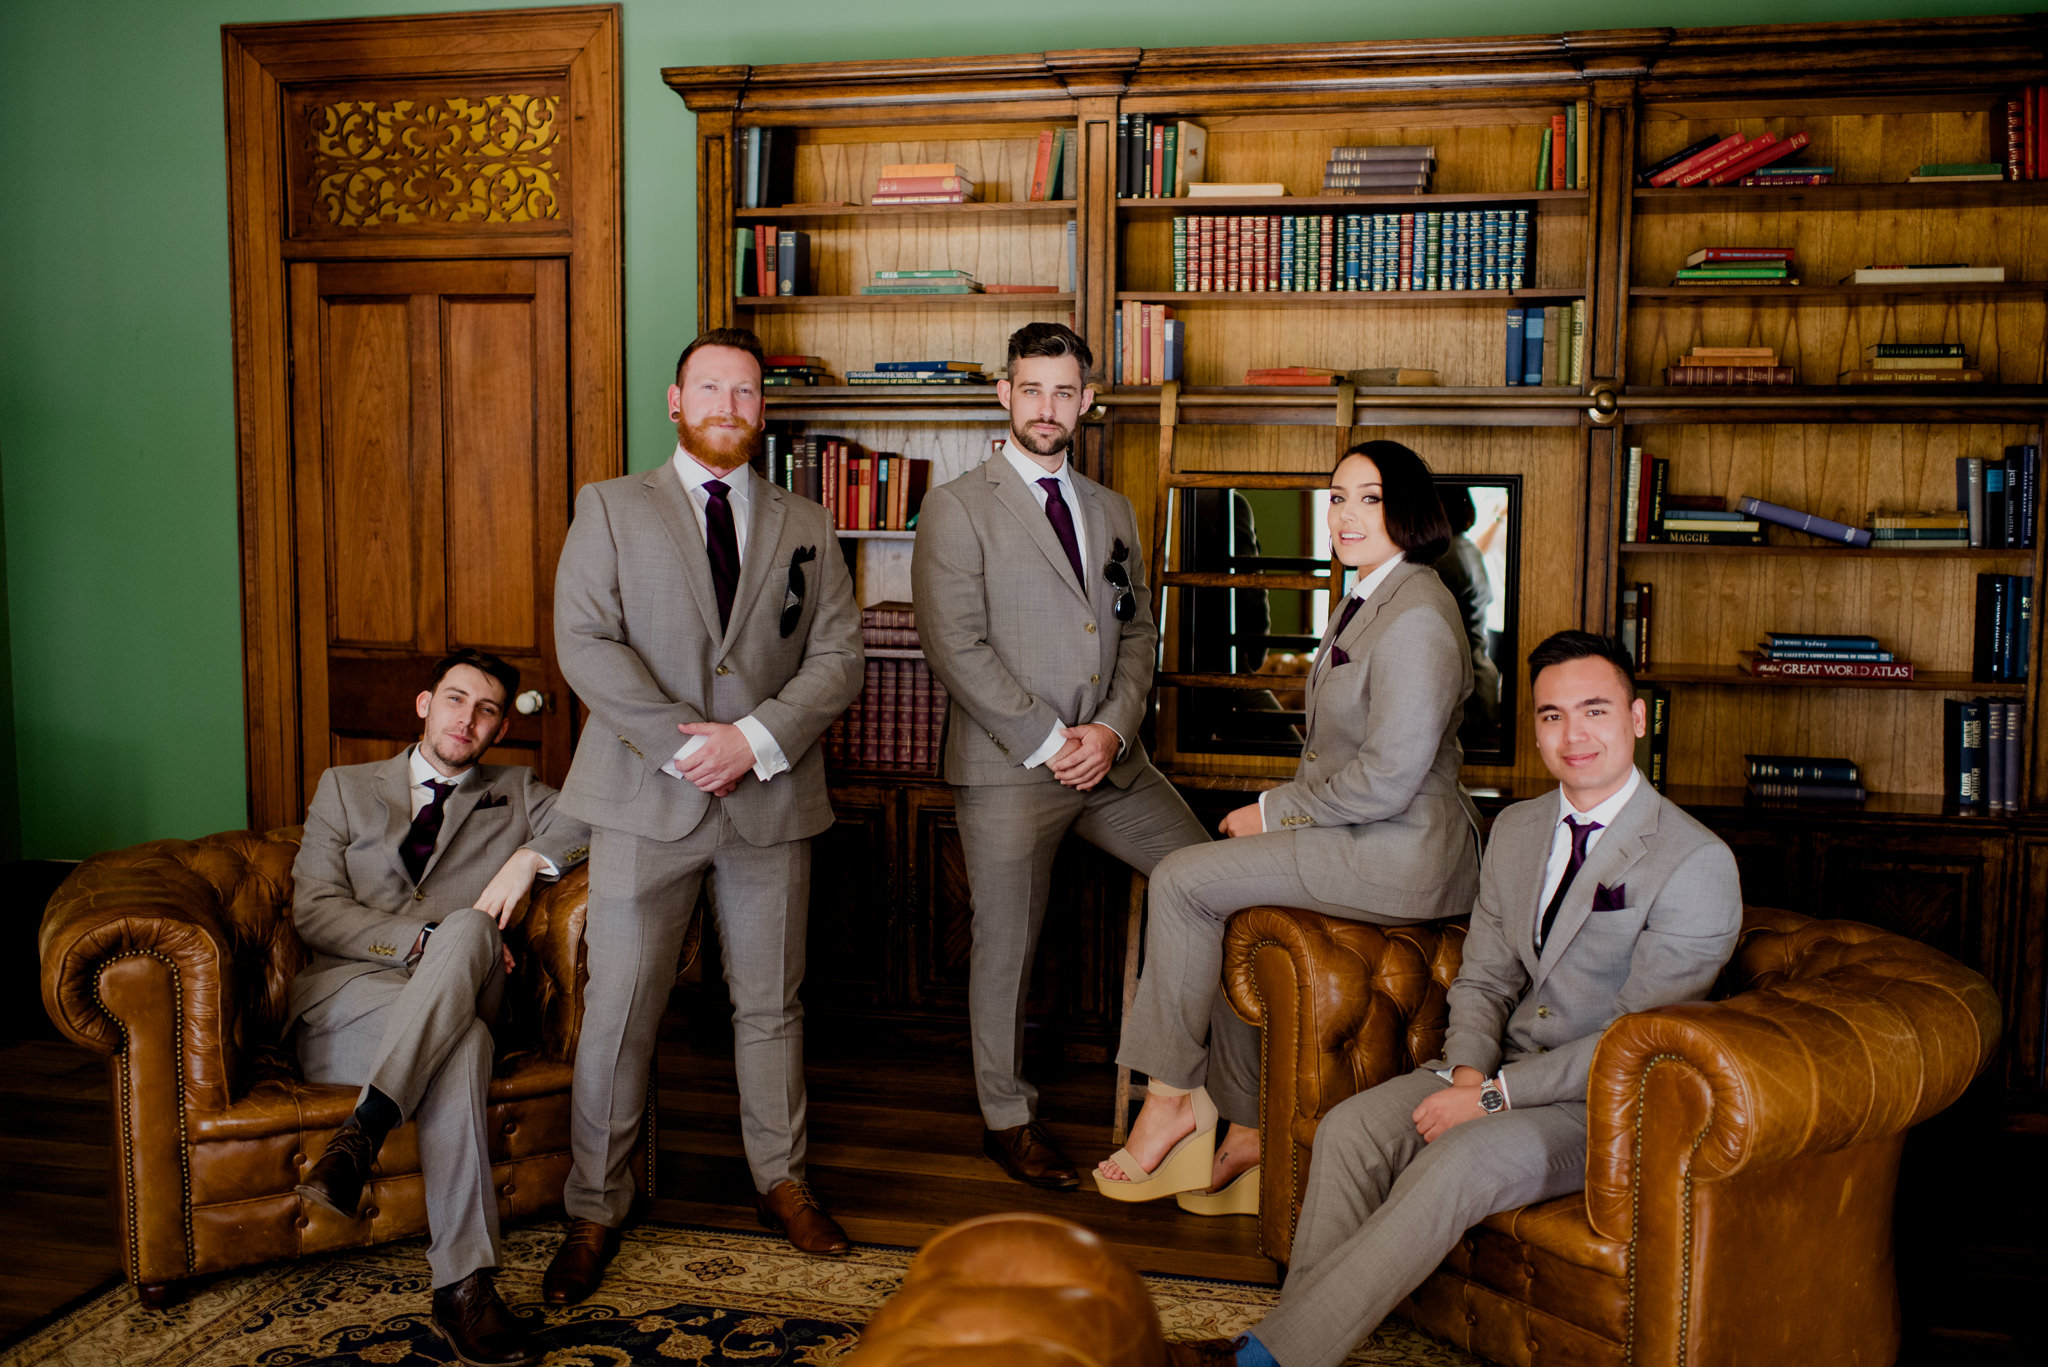 A groom and his groomsmen sitting in a library on leather chairs